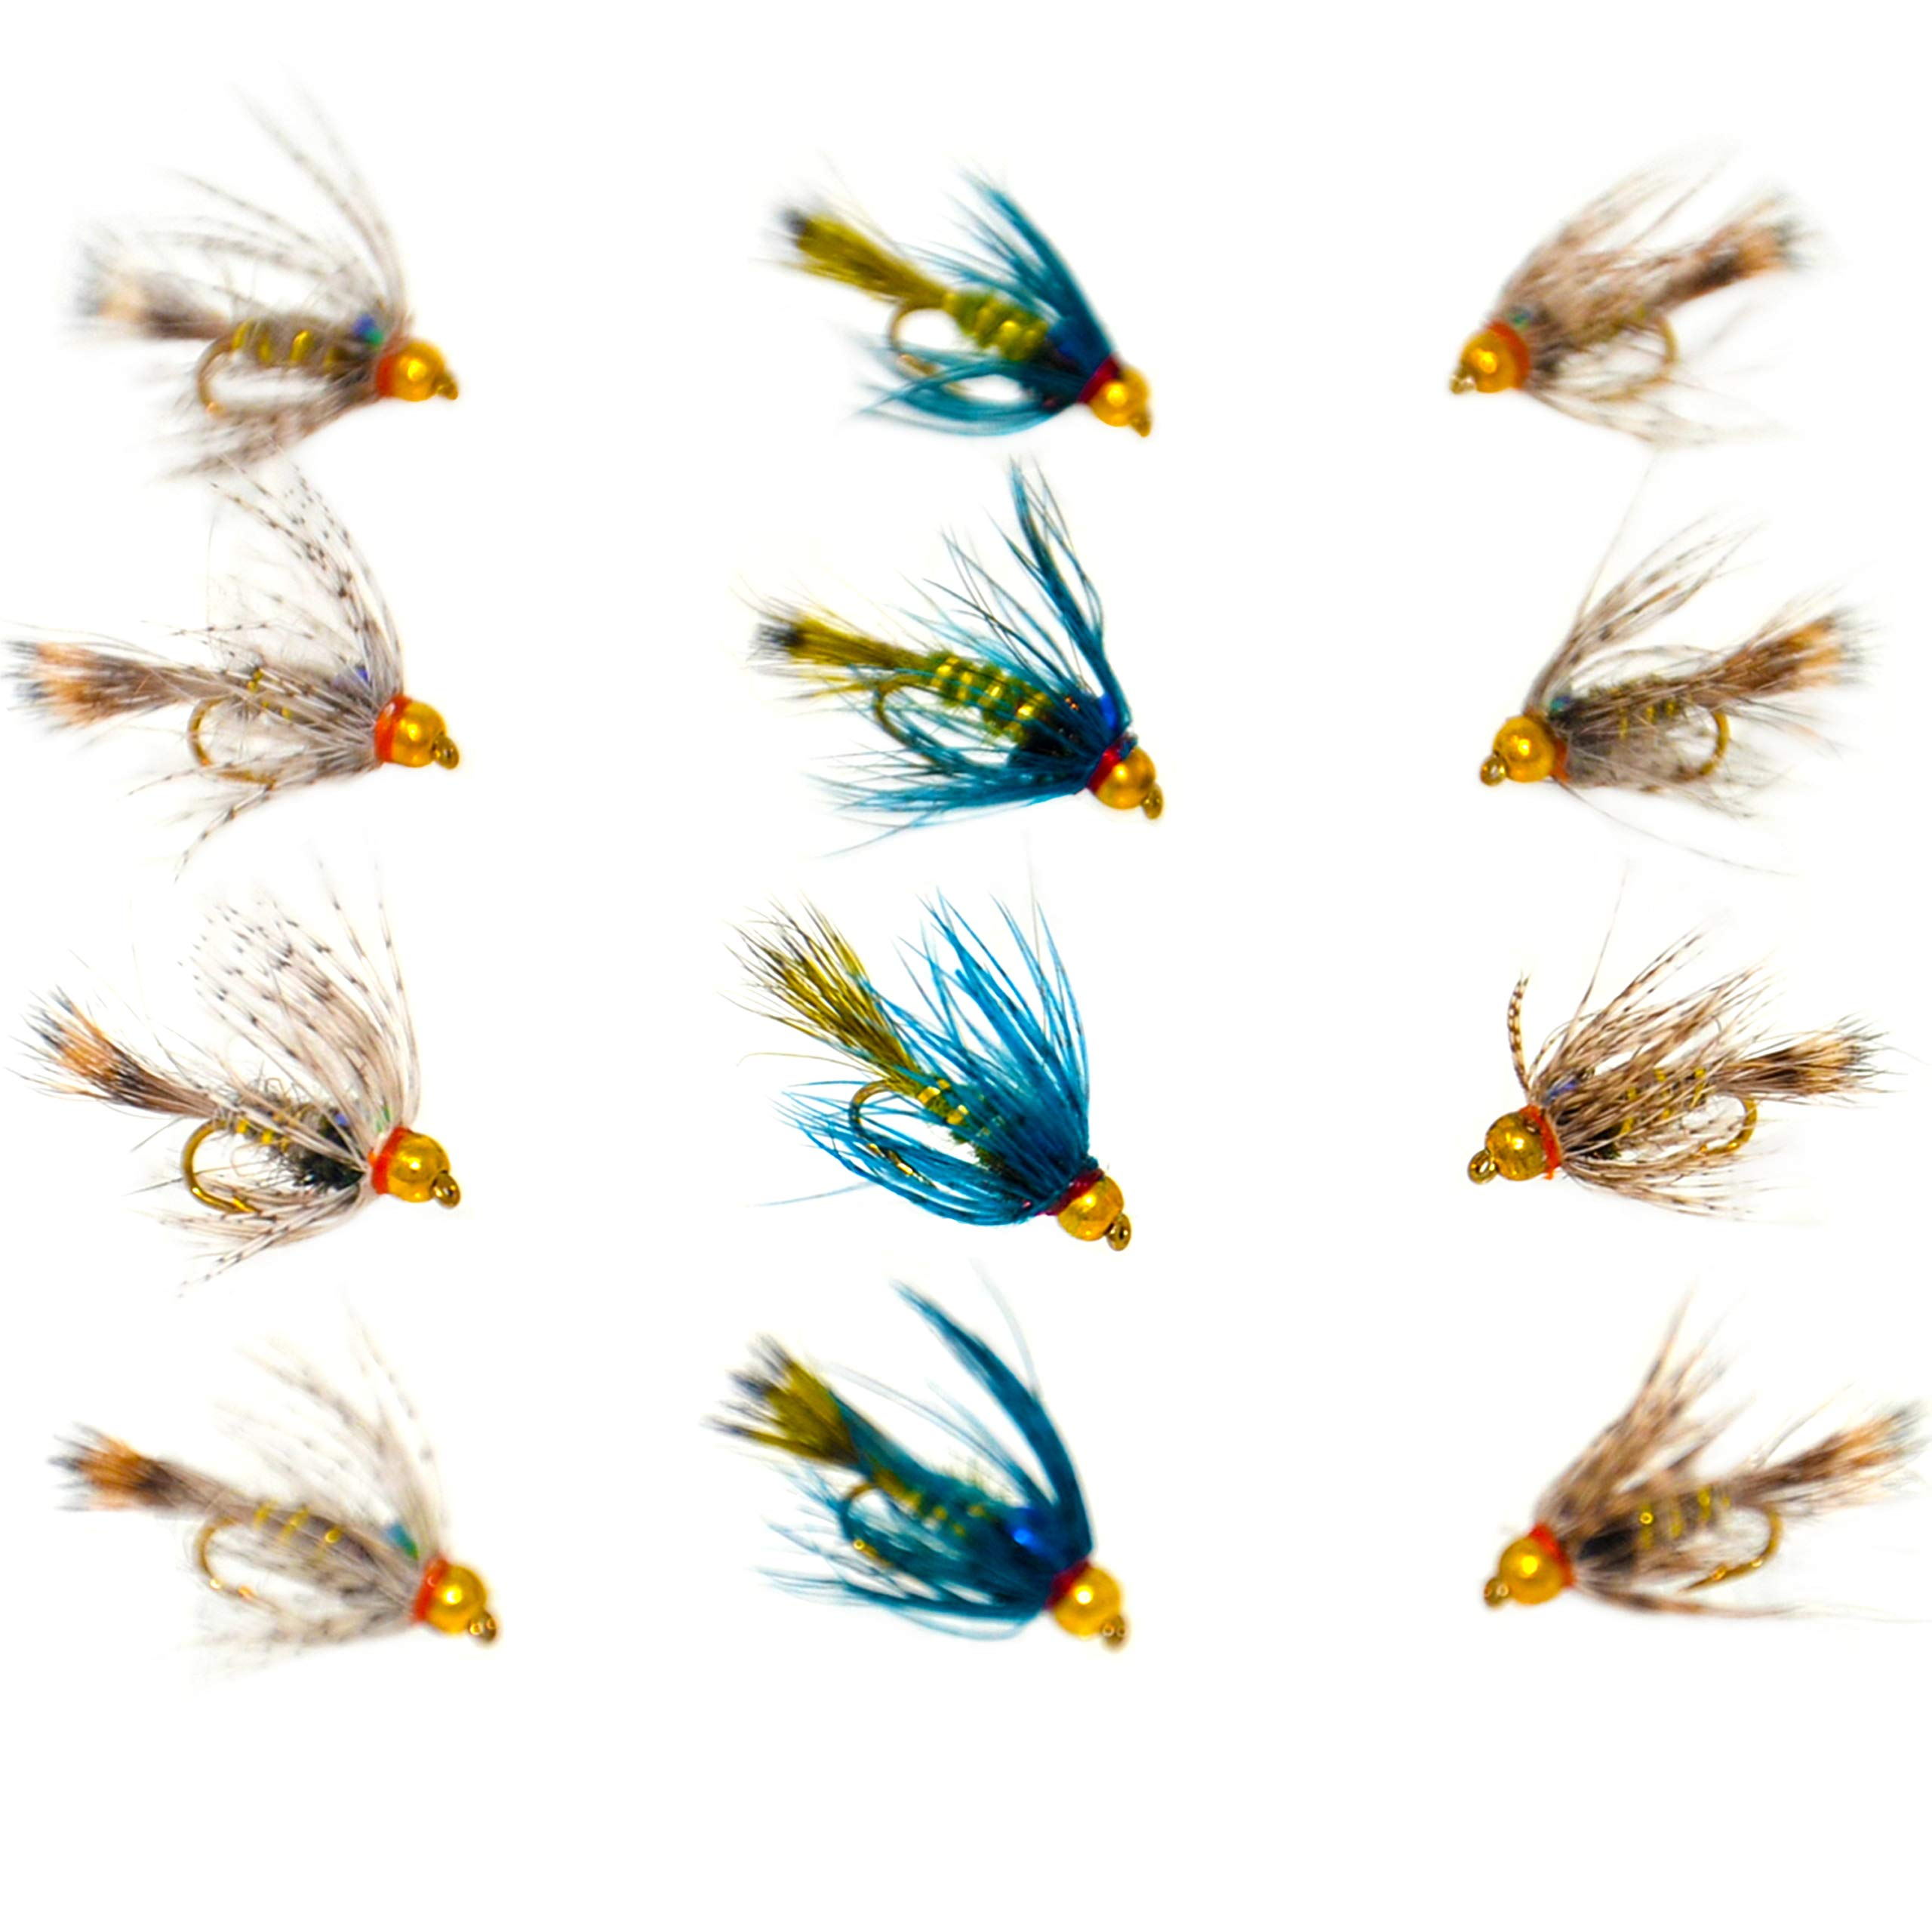 Outdoor Planet 12 Guide's Choice Hare's Ear/Beadhead Soft Hackle Hare's Ear Nymph Flies Wet Flies for Trout Fly Fishing Flies Lure Assortment by Outdoor Planet